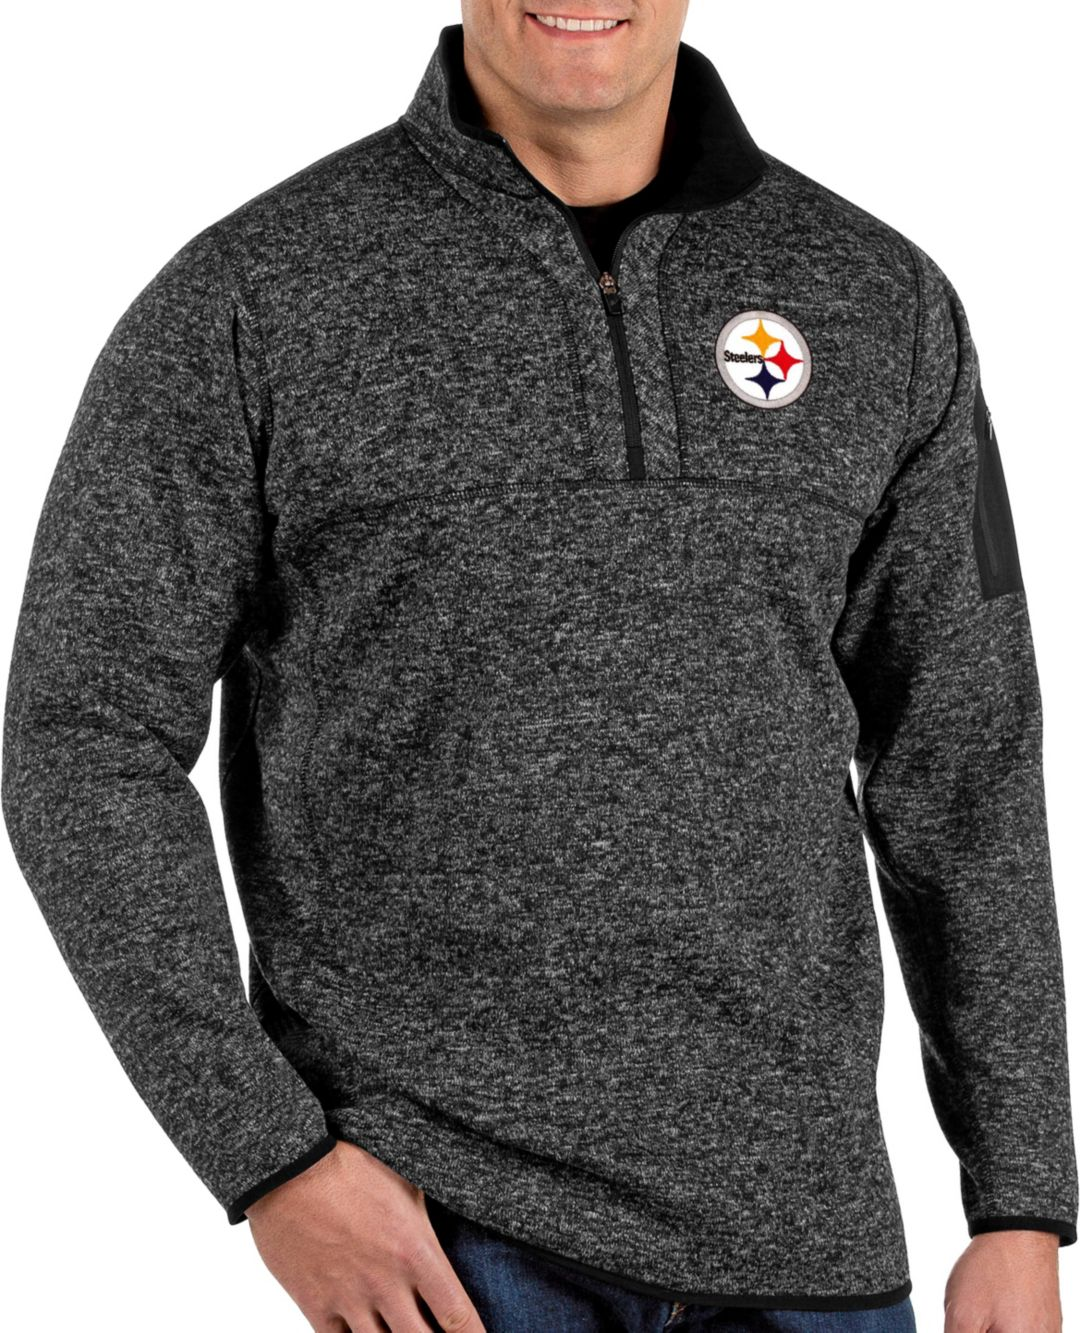 cheap for discount 6a8ad 39f40 Antigua Men's Pittsburgh Steelers Fortune Black Pullover Jacket